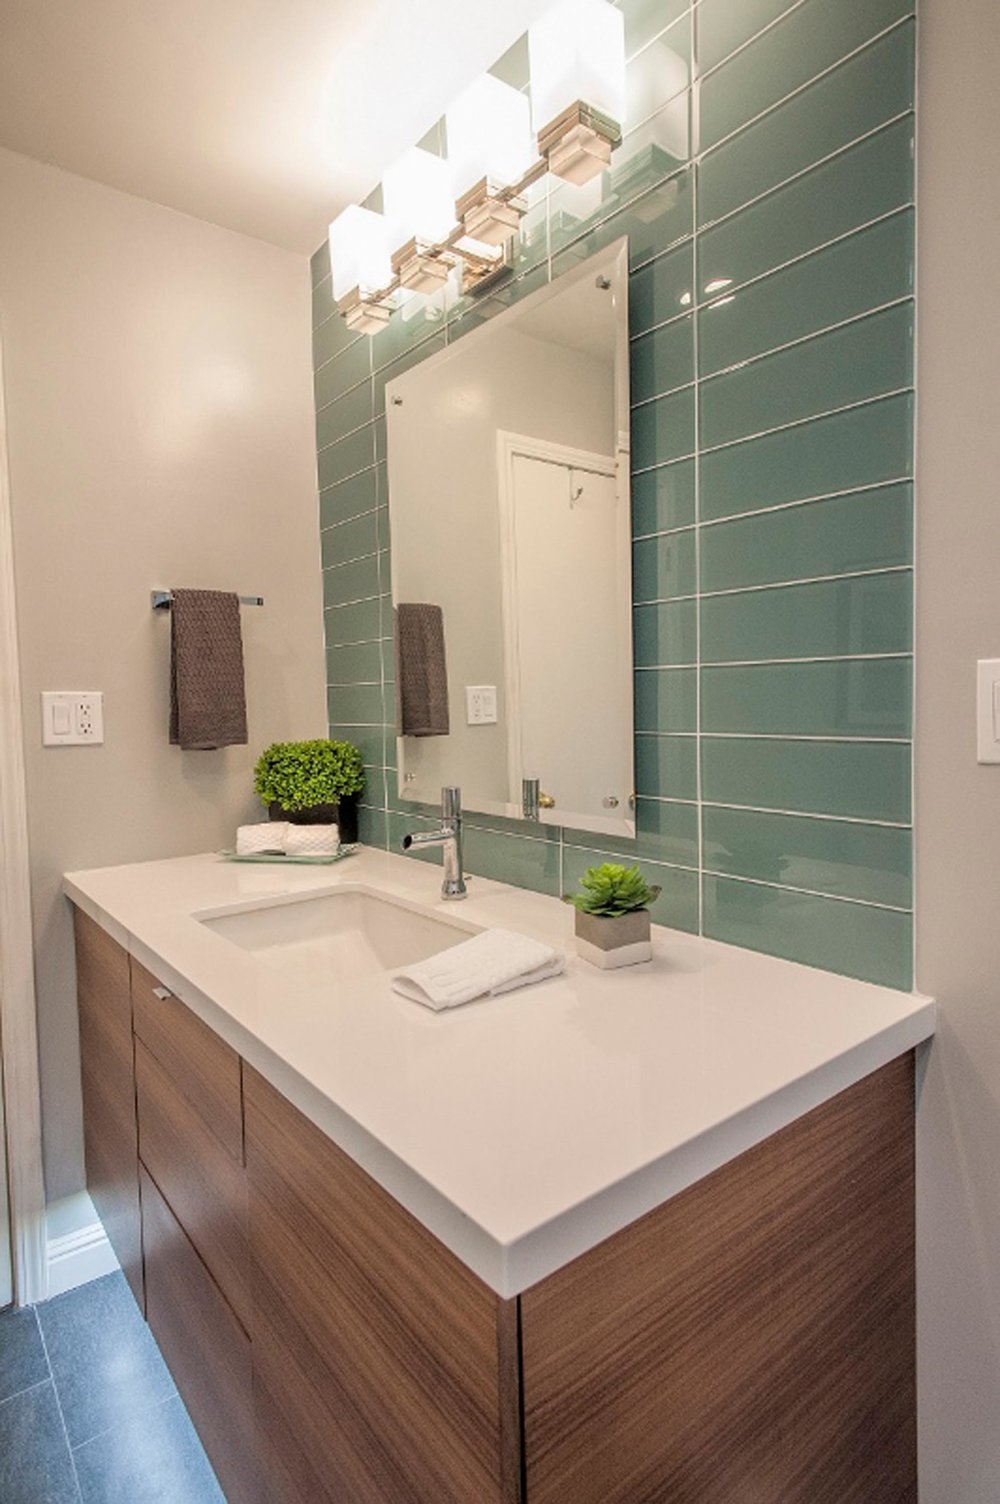 Stylish bathroom with vanity mirror